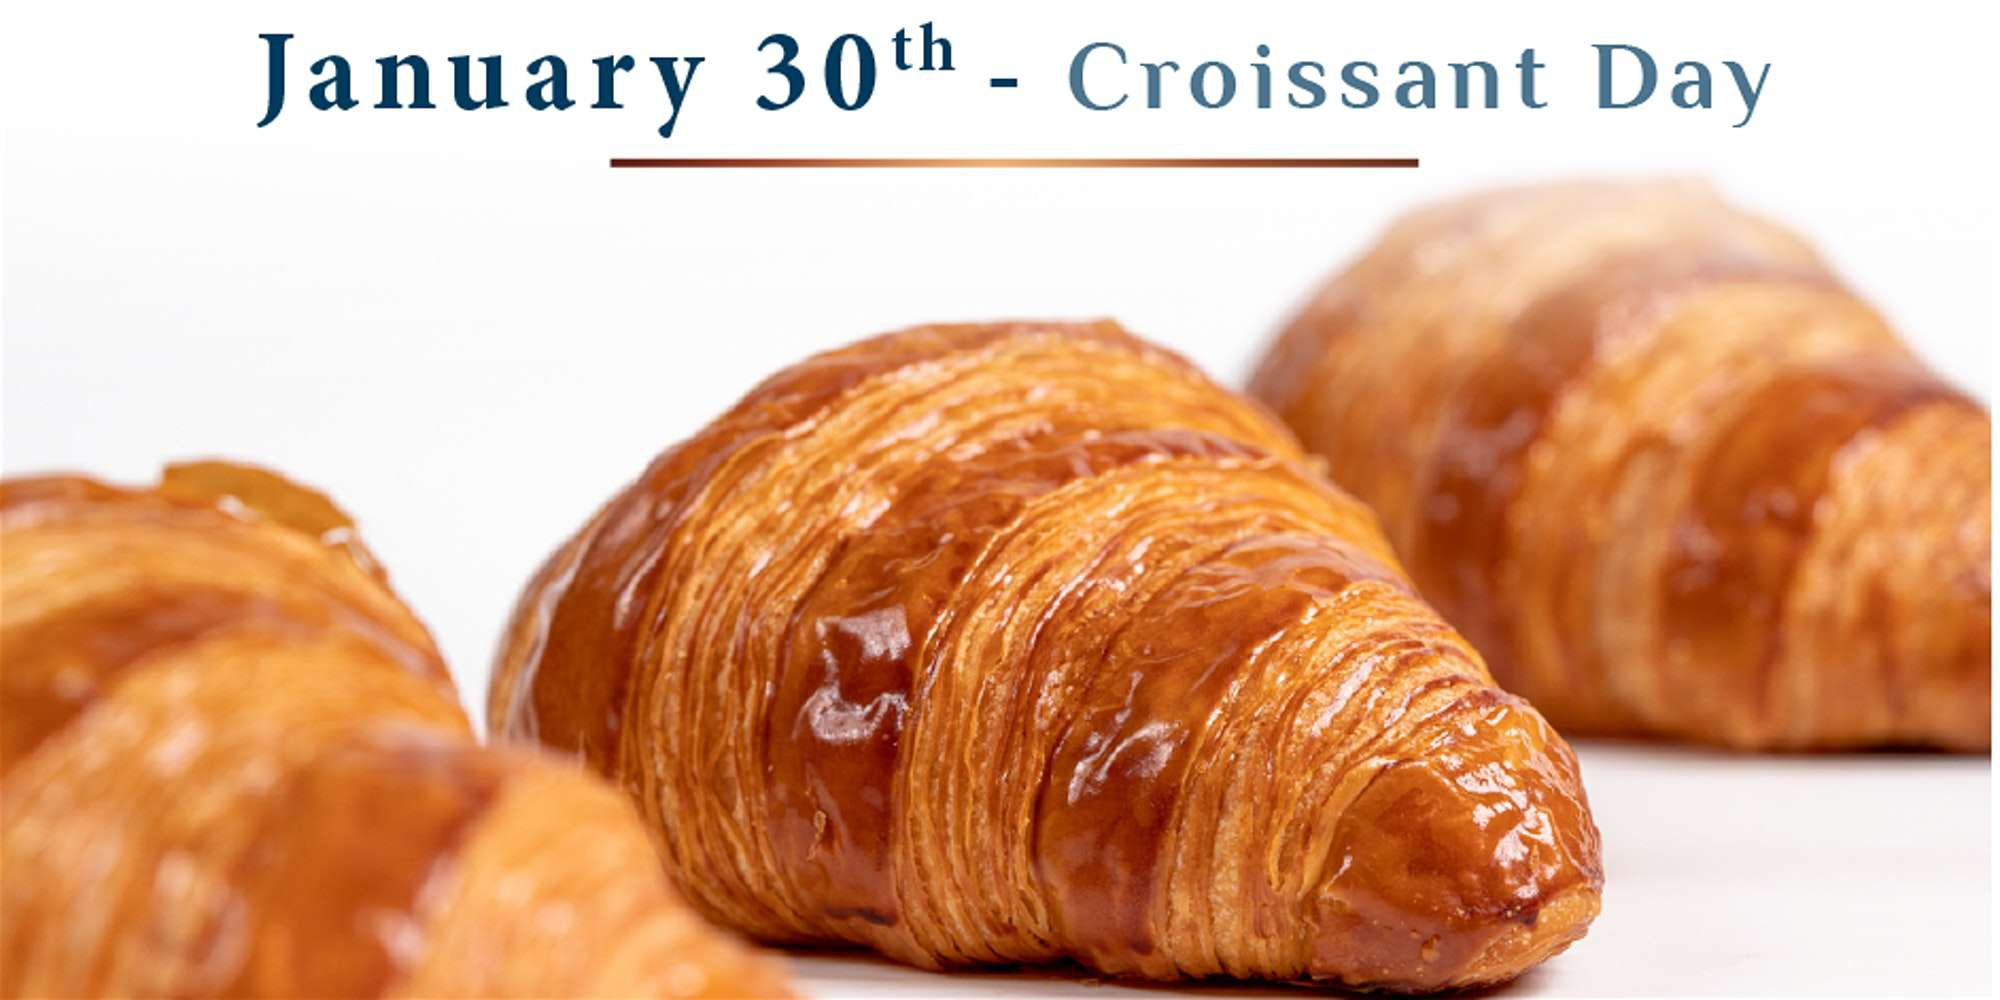 National Croissant Day Wishes pics free download